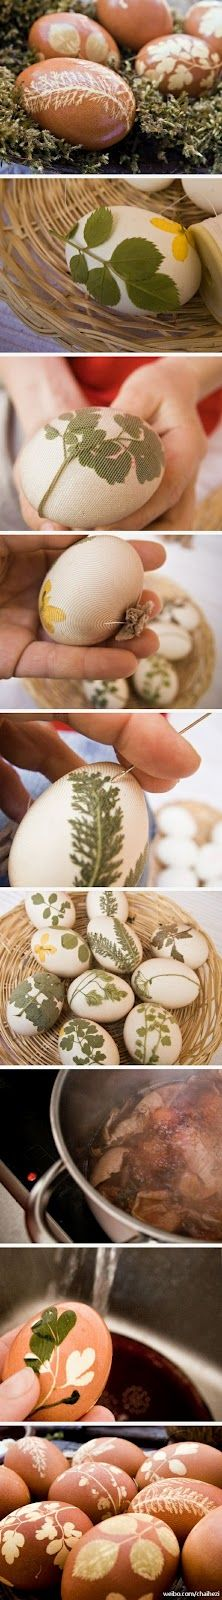 Ovos decorados (love these earthy looking Easter eggs) Easter Crafts, Holiday Crafts, Holiday Fun, Fun Crafts, Crafts For Kids, Easter Ideas, Easter Dyi, Easter Brunch, Easter Party